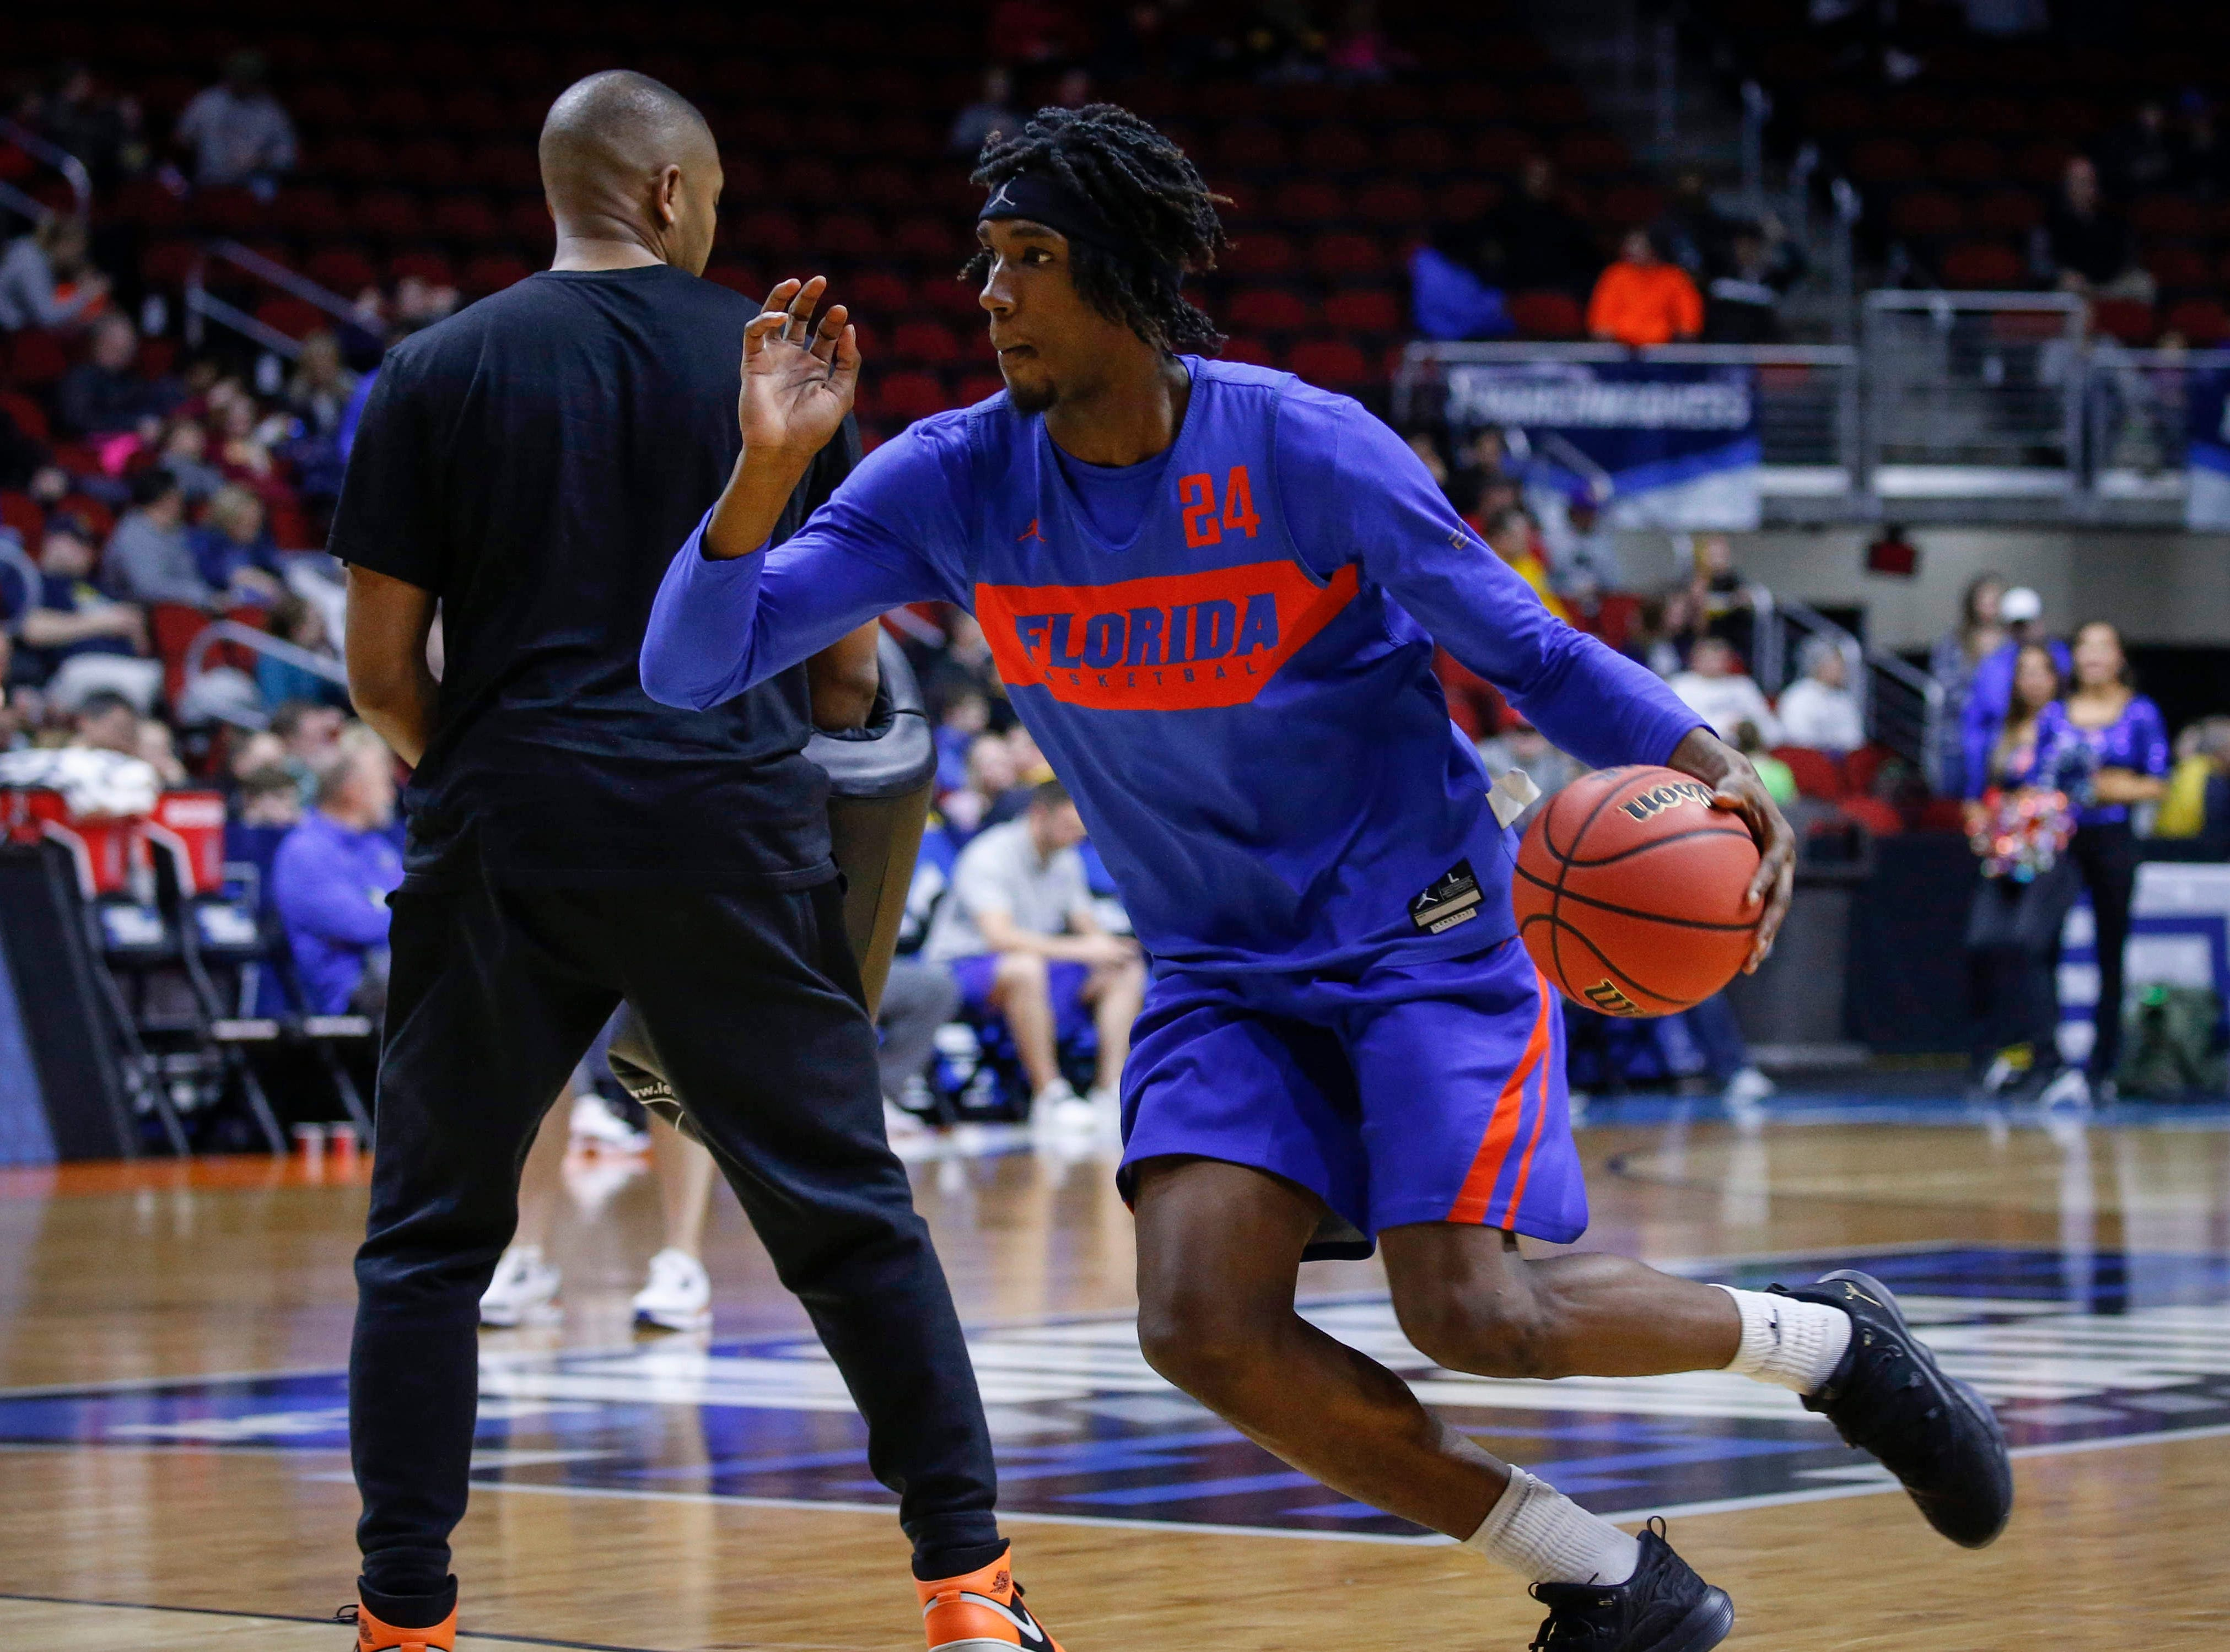 Florida sophomore guard Deaundrae Ballard drives the ball to the net during open practice on Wednesday, March 20, 2019, at Wells Fargo Arena in Des Moines, Iowa.